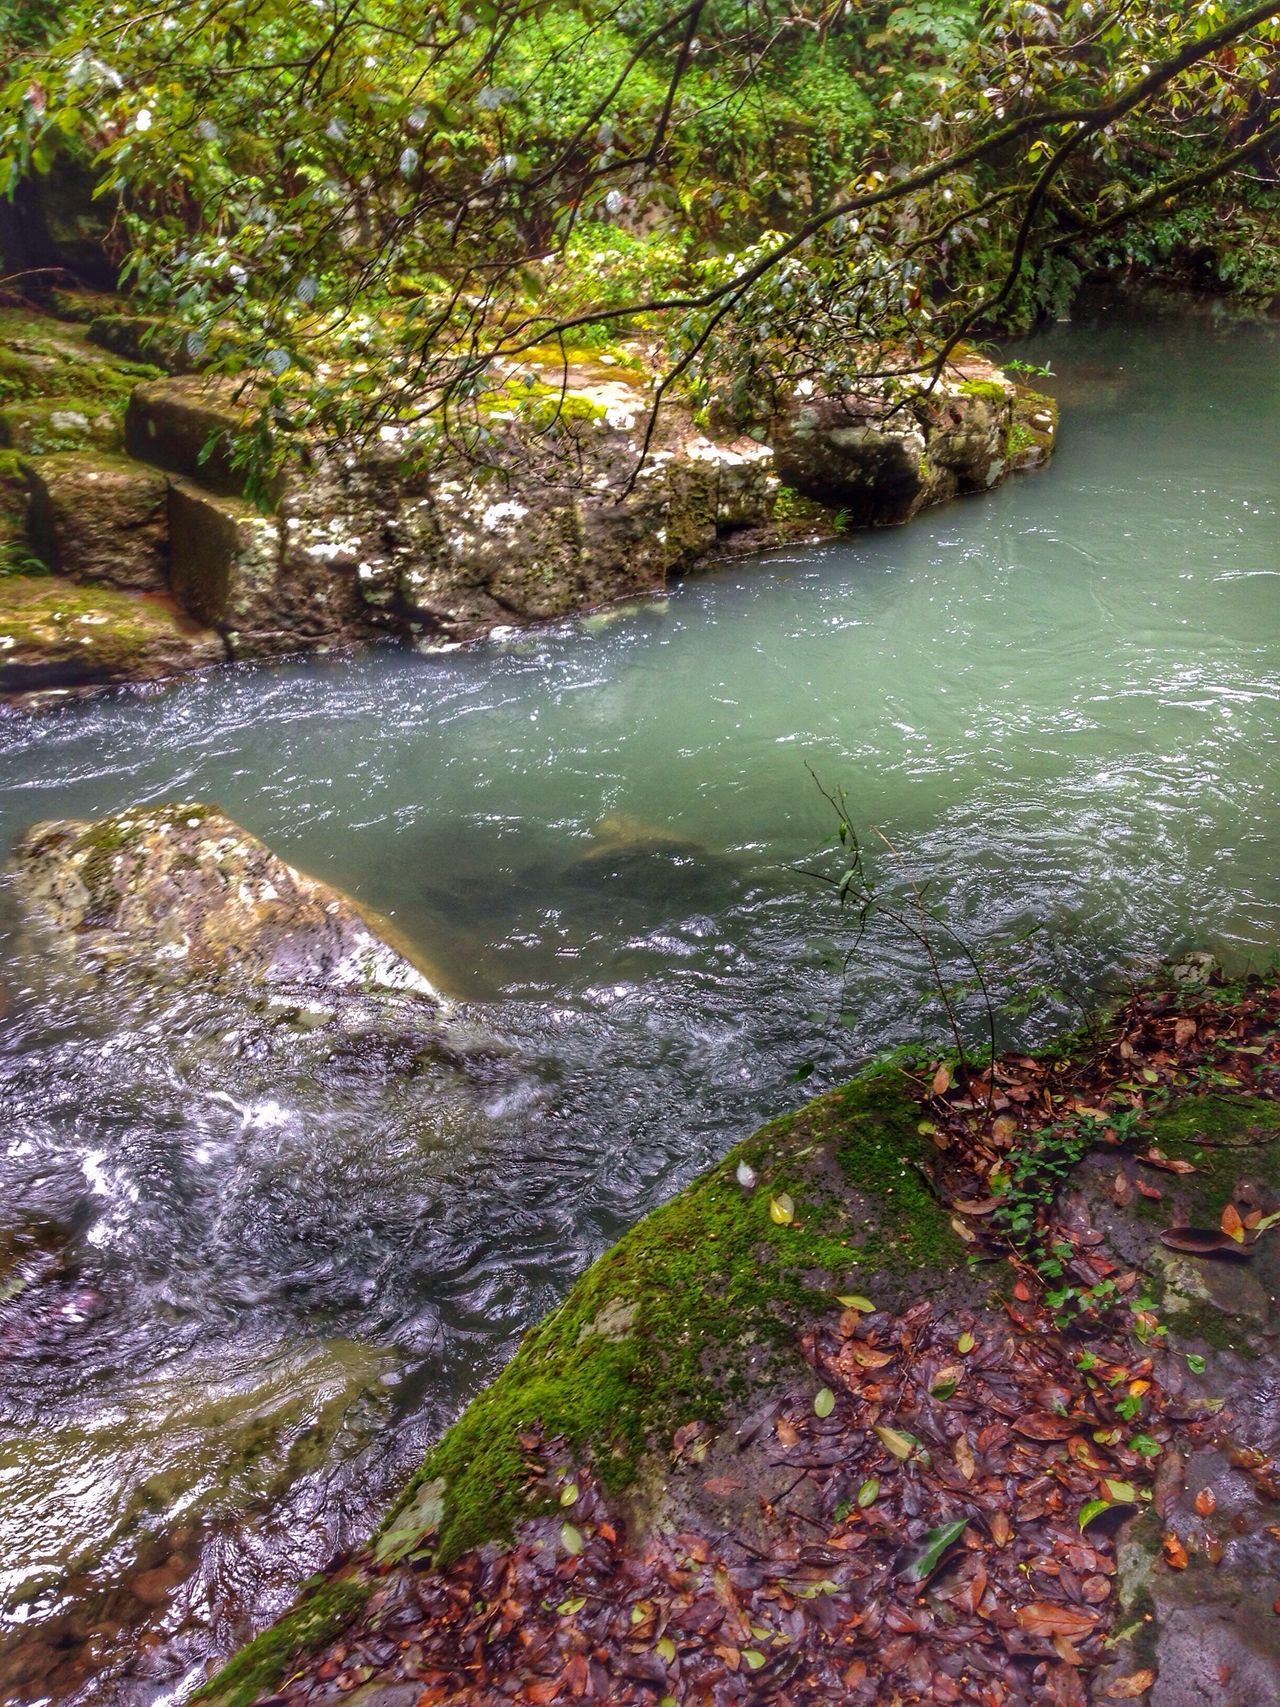 Looks like a great pool to take a dip! Beauty In Nature Creekside Trail Mountains And Valleys Chasing Waterfalls Photography #photo #photos #pic #pics #tagsforlikes #picture #pictures #snapshot #art #beautiful #instagood #picoftheday #photooftheday #color #all_shots #exposure #composition #focus #capture #moment In Nagasaki, Perfecture Japan Landscape